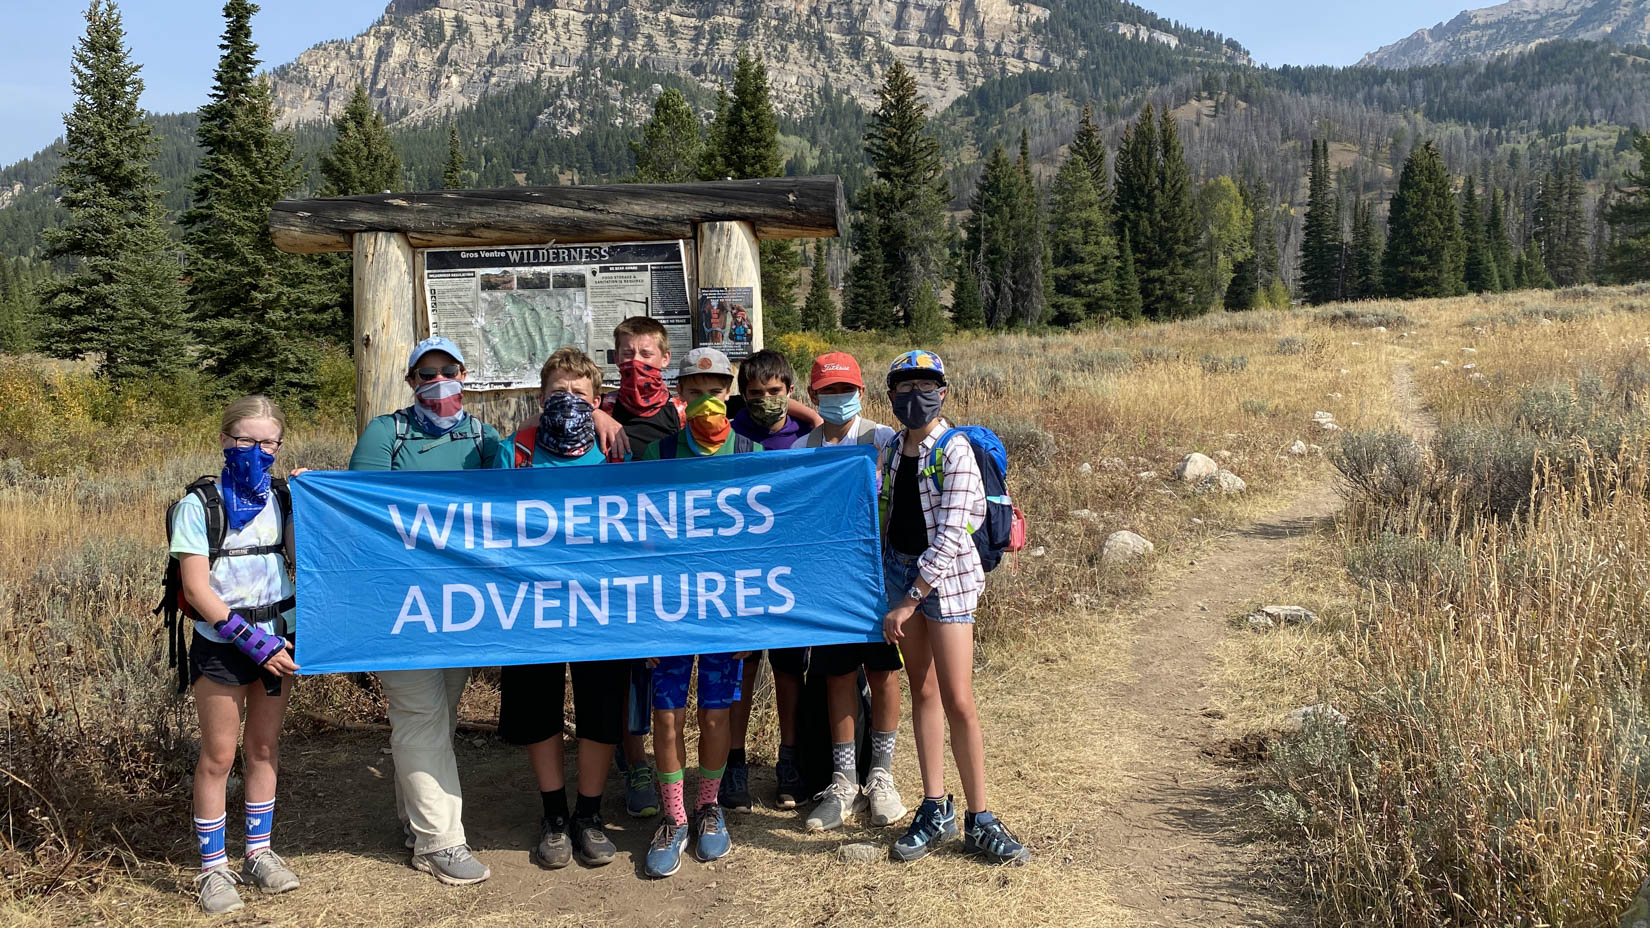 Travel group wearing masks holding a Wilderness Adventures sign